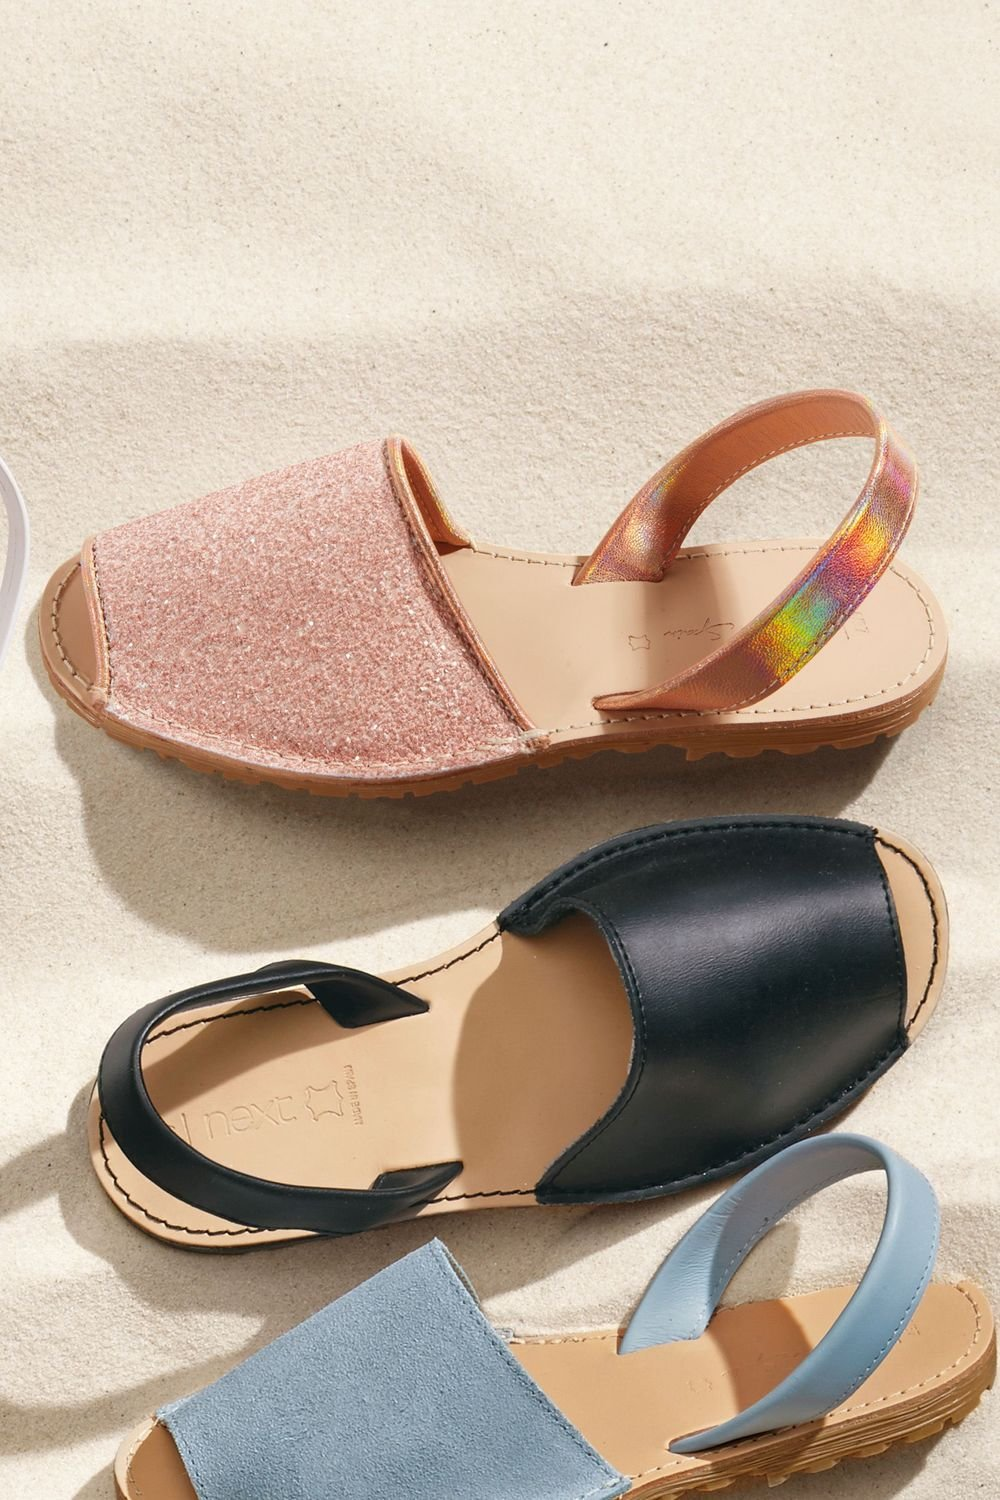 5660ec7ea8e0 Next Glitter Beach Sandals Online